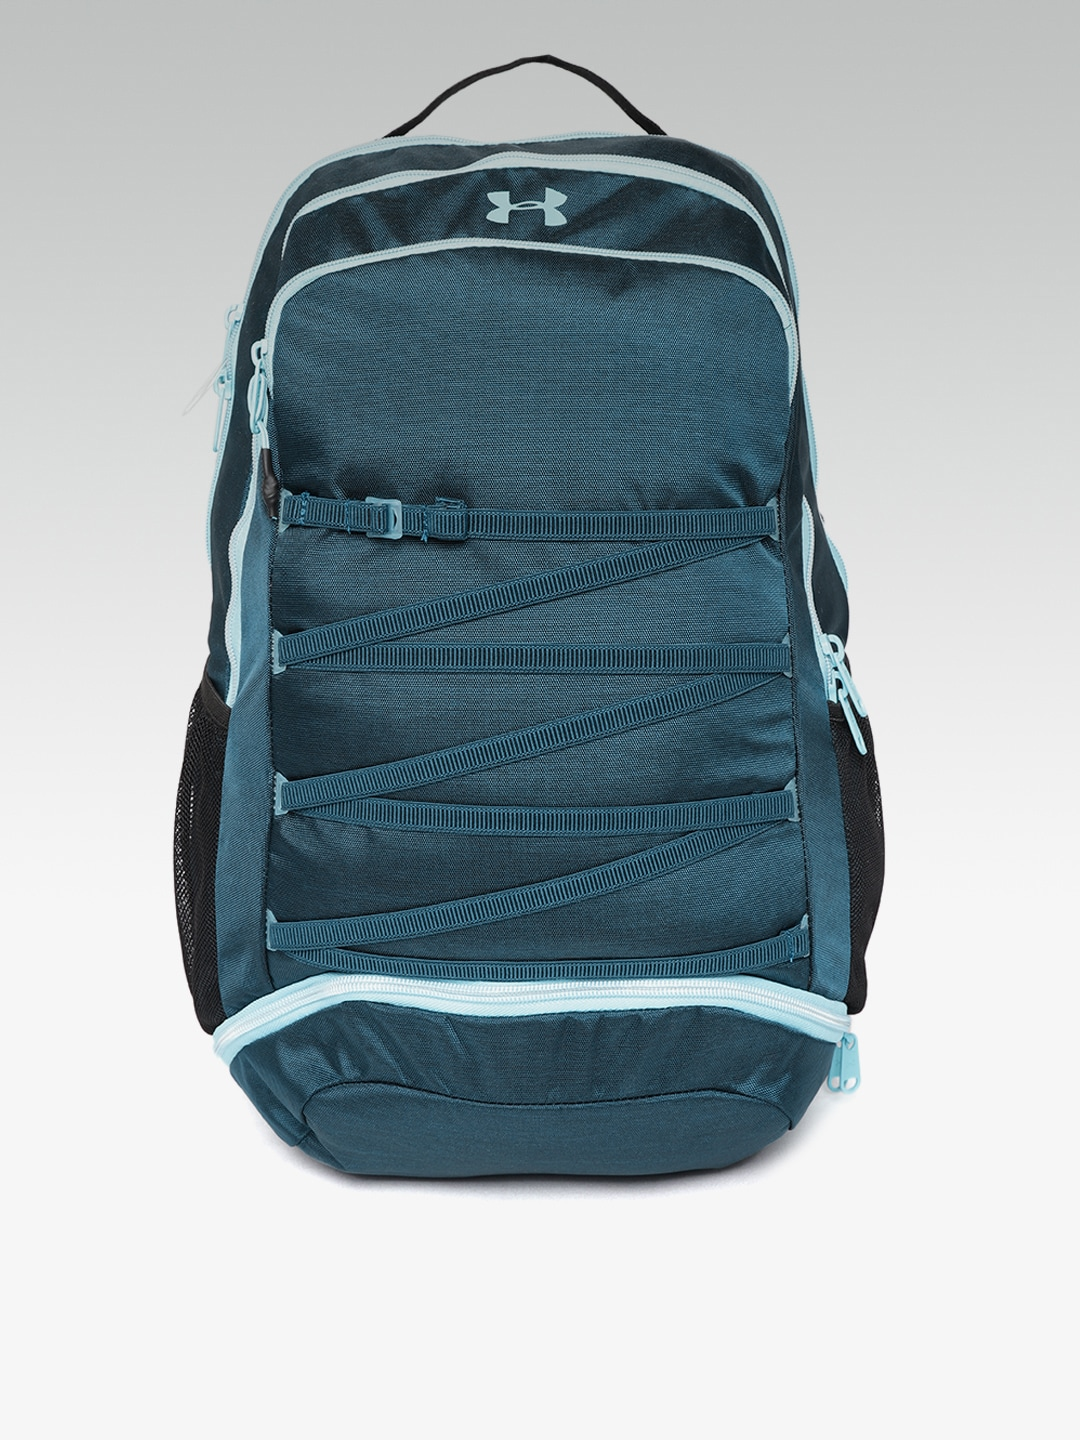 4cbb9ddb1439 Under Armour Backpacks - Buy Under Armour Backpacks online in India